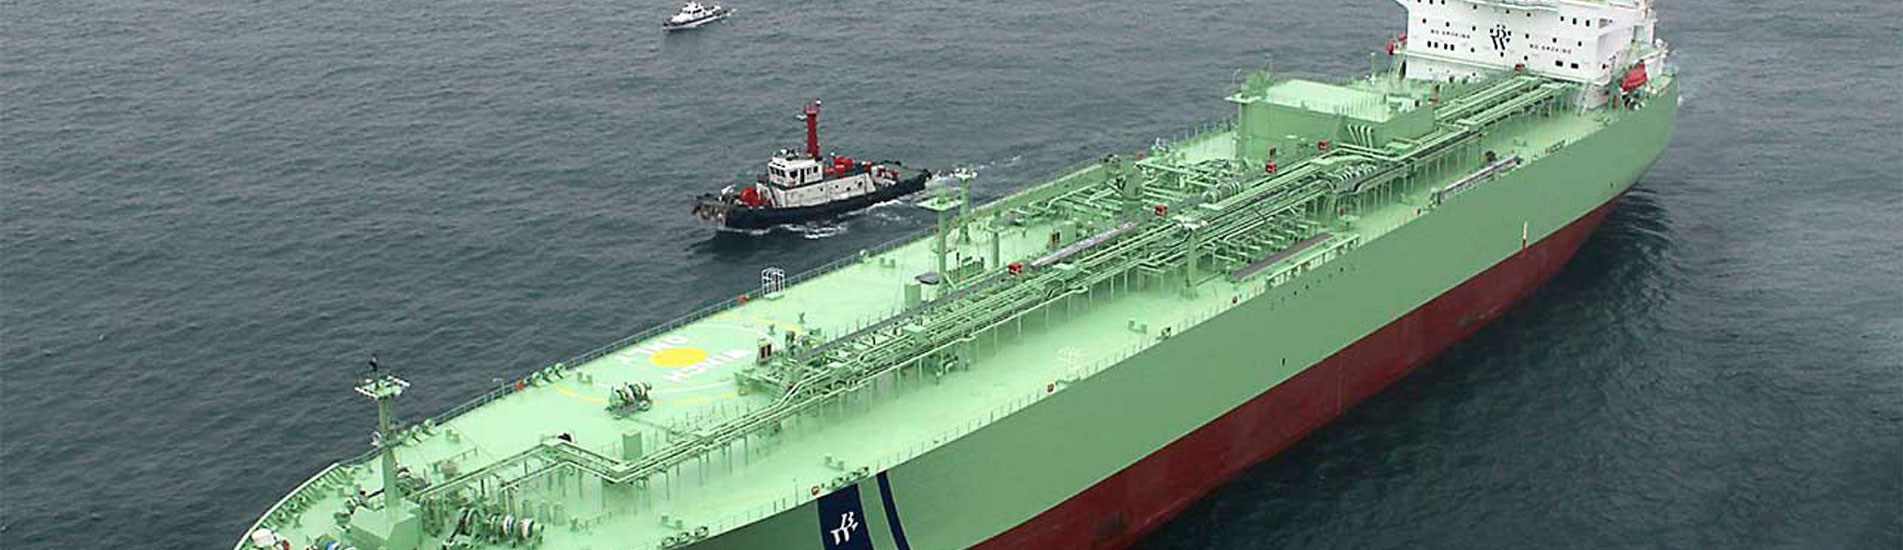 BW LPG announced plans to retrofit several vessels with LPG-propelled dual-fuel engines. Photo: BW LPG Limited